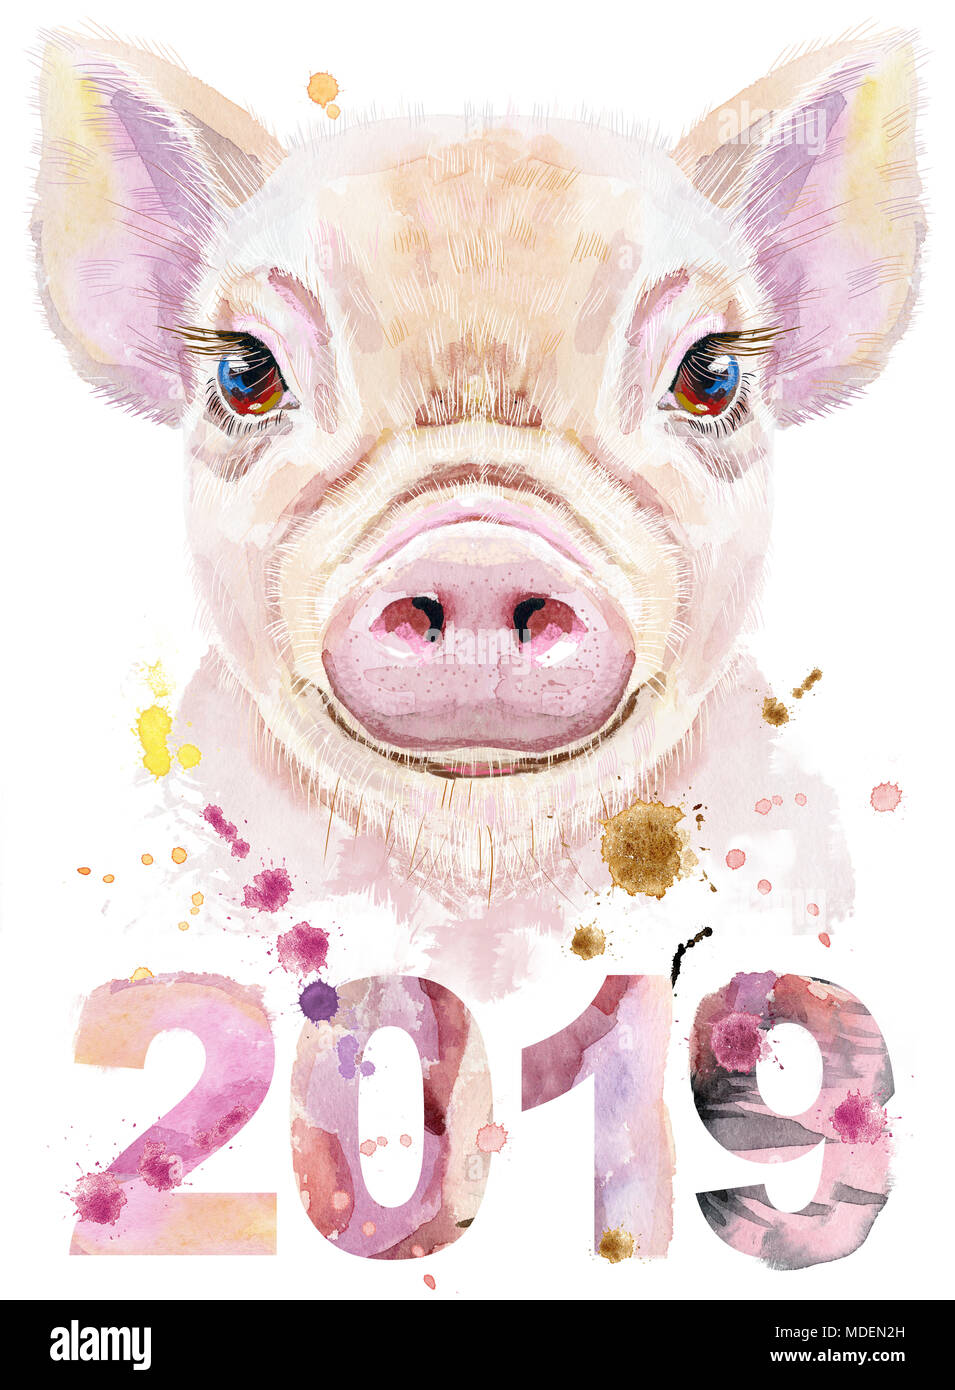 2019 New Year Card Pig Stockfotos & 2019 New Year Card Pig Bilder ...